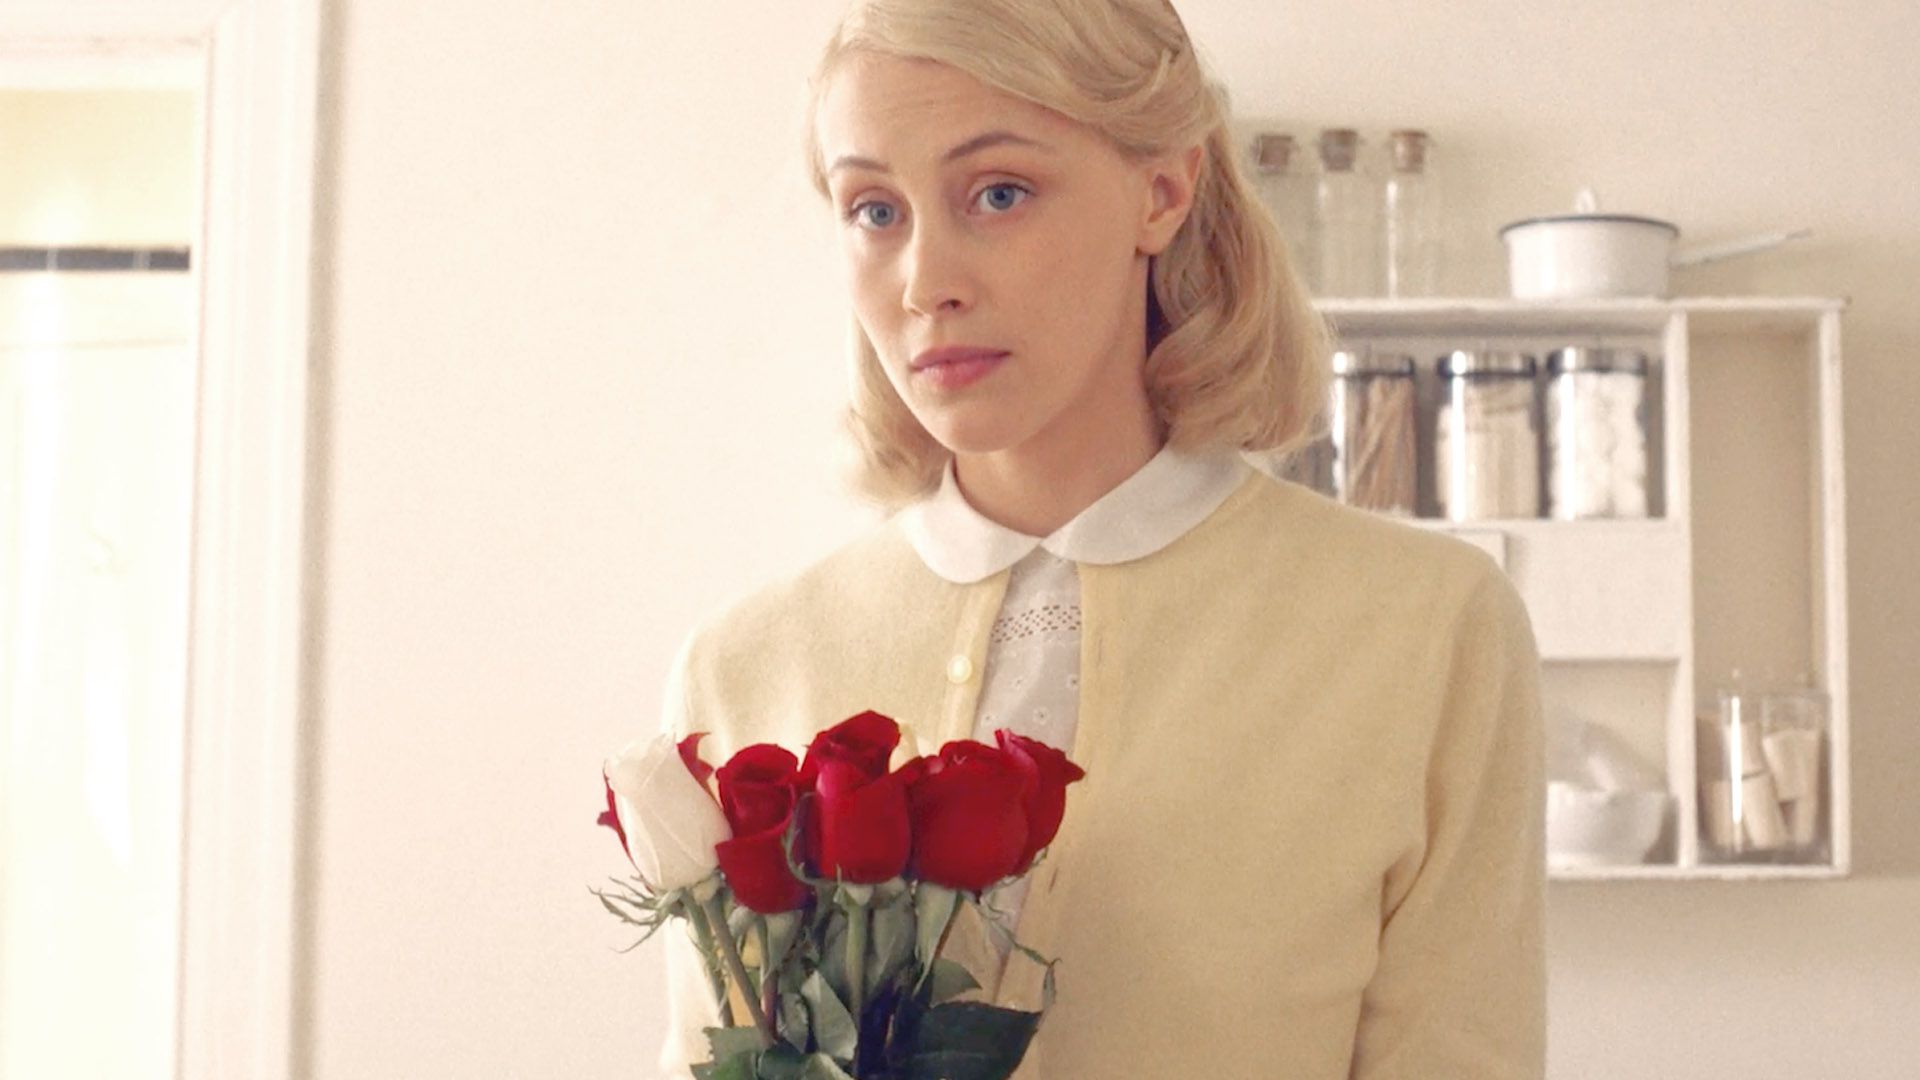 Sarah Gadon as Olivia Hutton with red roses in Indignation